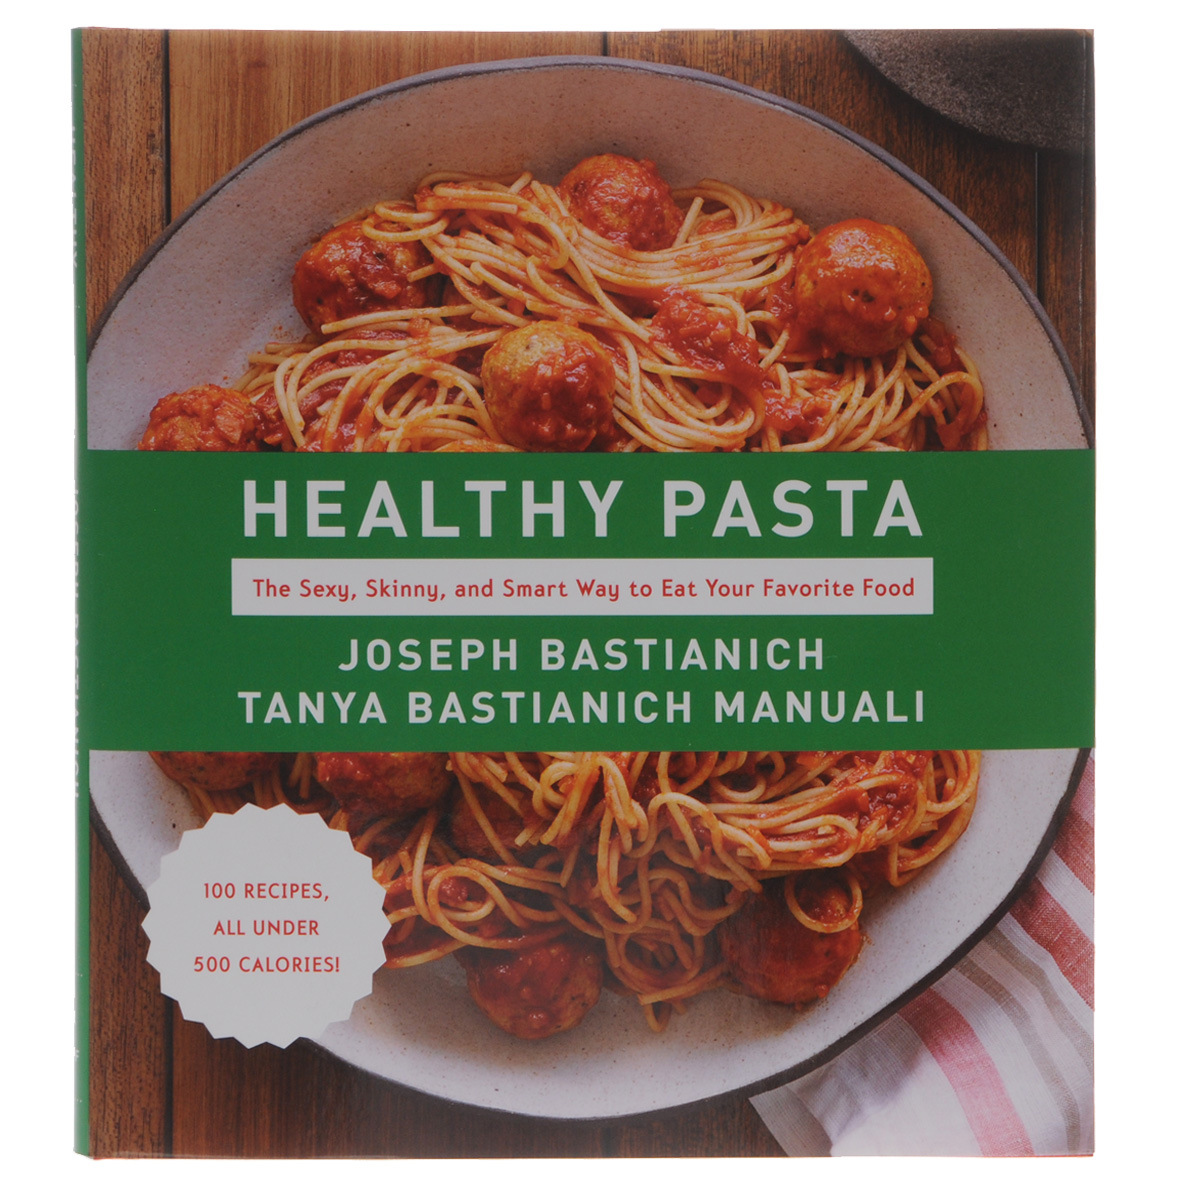 Healthy Pasta: The Sexy, Skinny, and Smart Way to Eat Your Favourite Food набор для кухни pasta grande 1126804